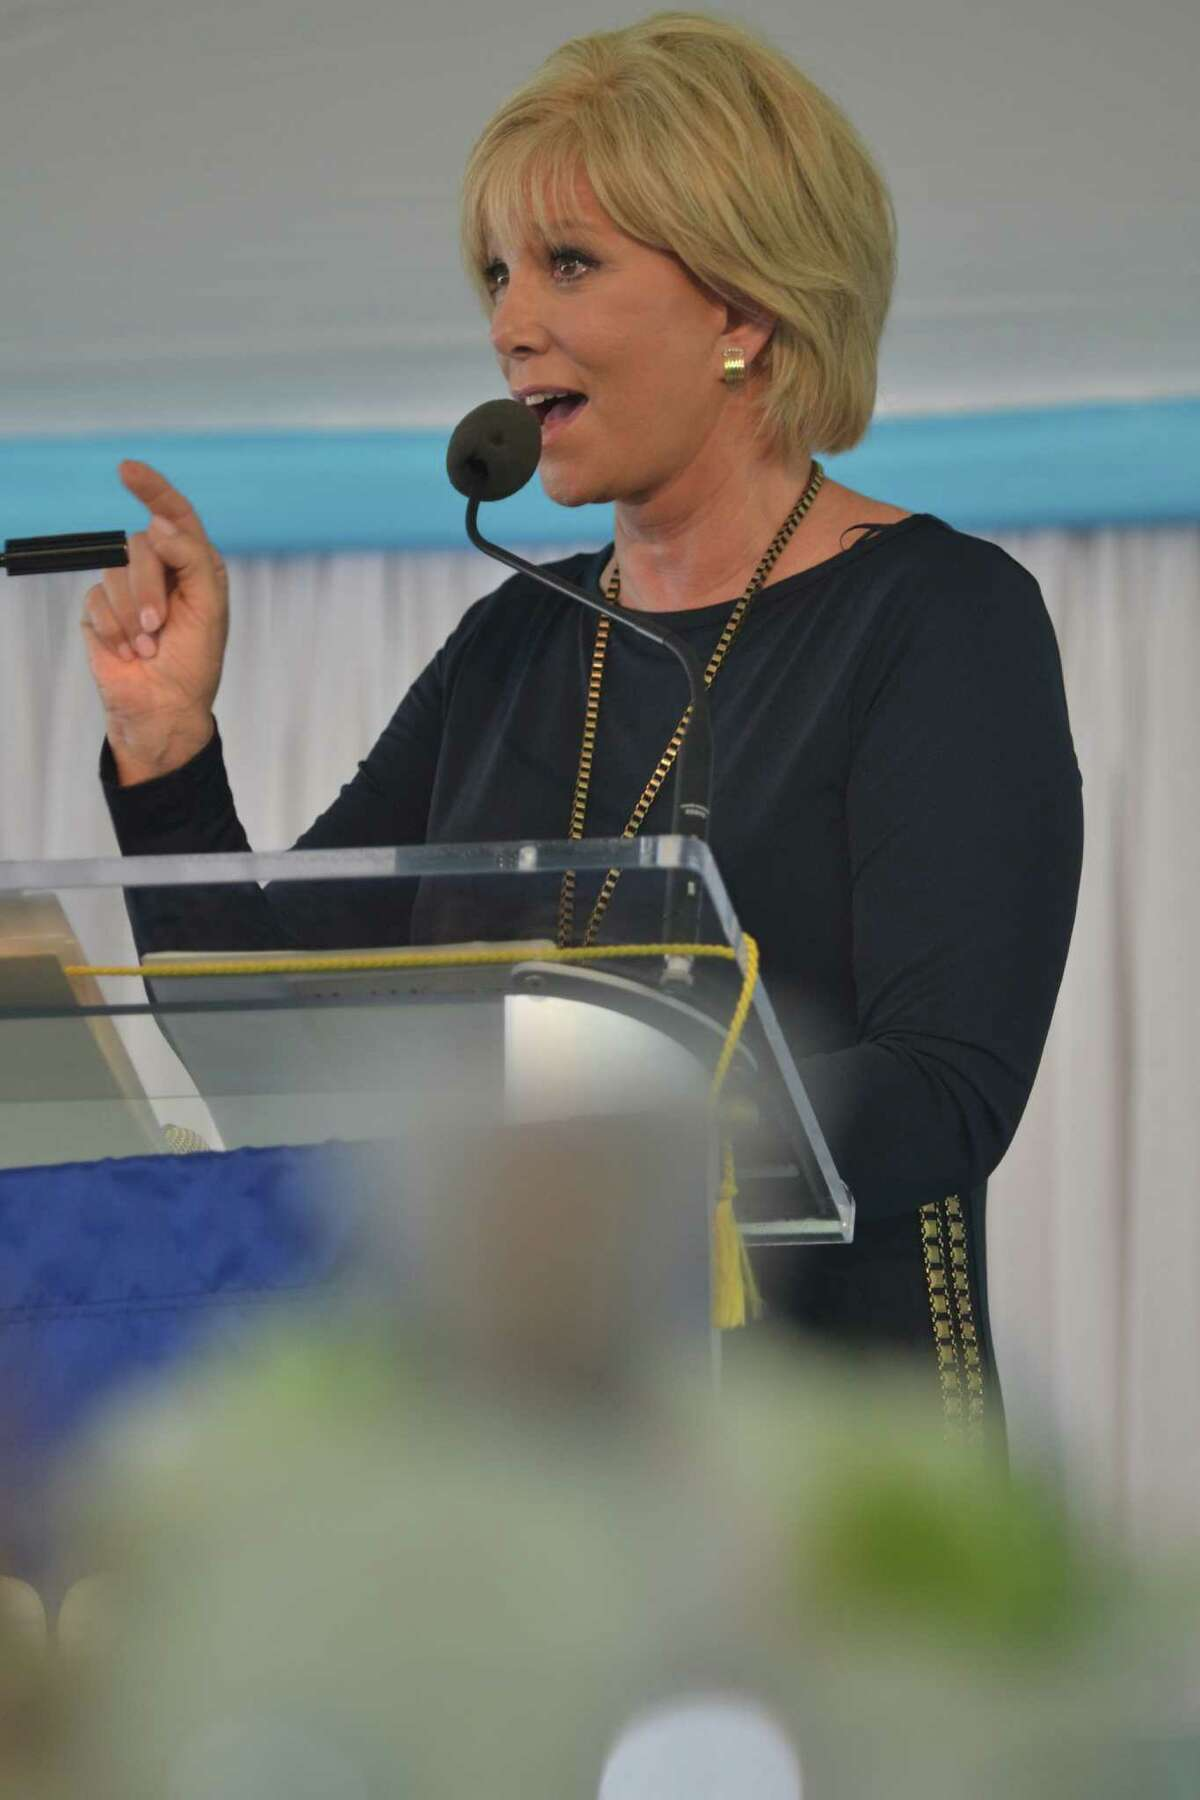 Joan Lunden, the keynote speaker, addresses the guests at the Rose of Hope Luncheon in Fairfield, Conn. Lunden is a breast cancer survivor, advocate and celebrity personality.